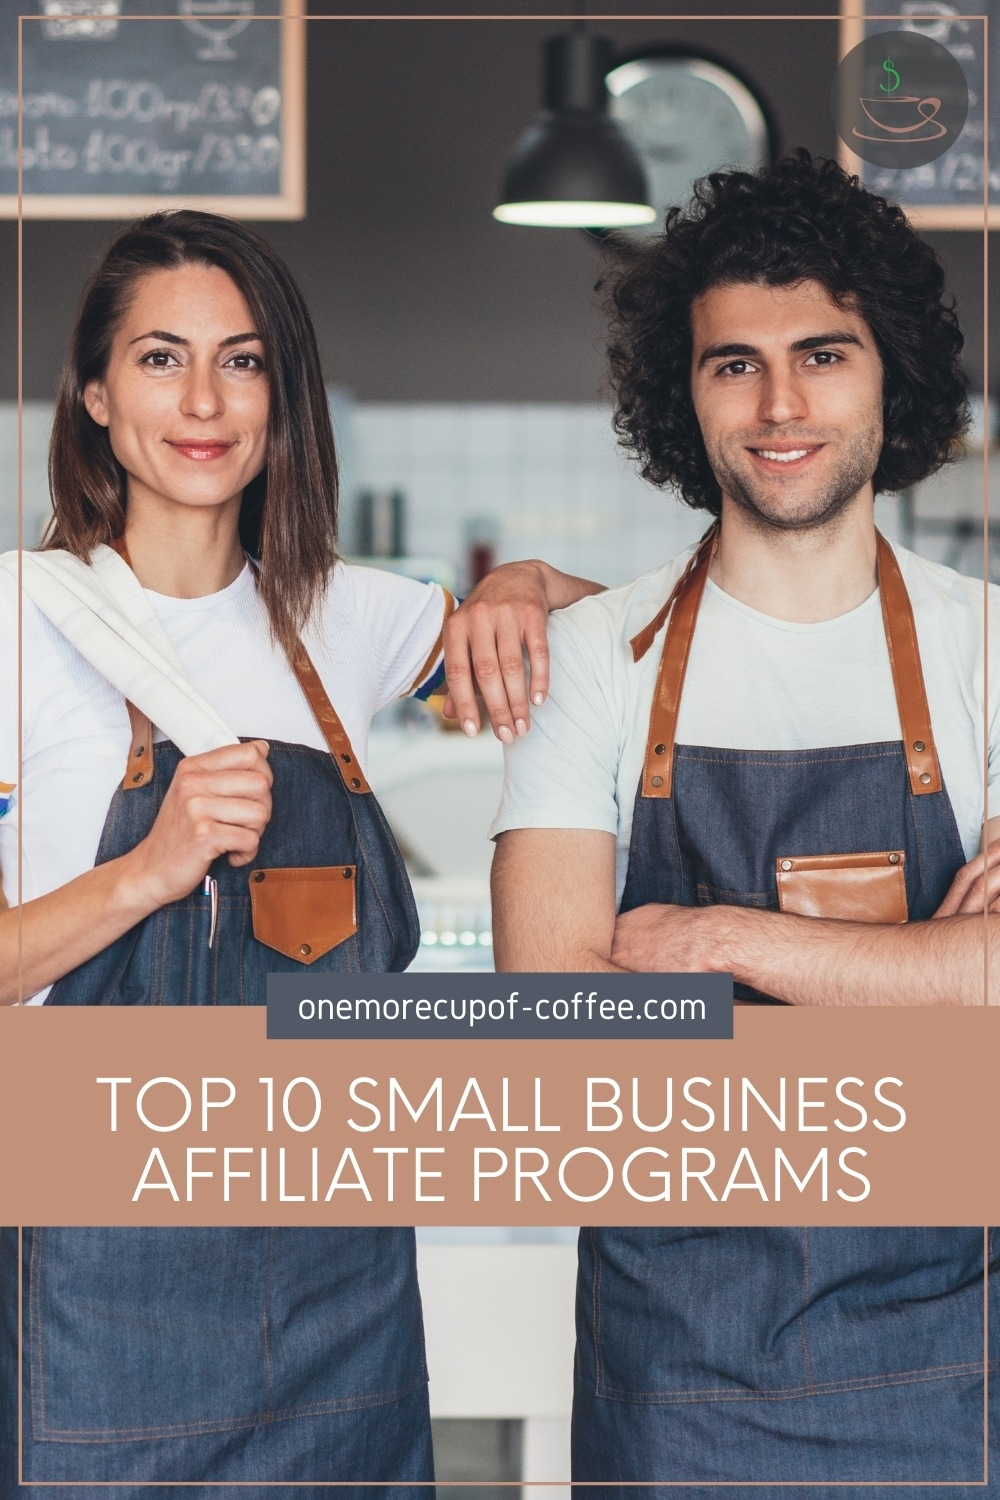 """a man and woman business owners in front of their shop, with text overlay in light brown banner """"Top 10 Small Business Affiliate Programs"""""""